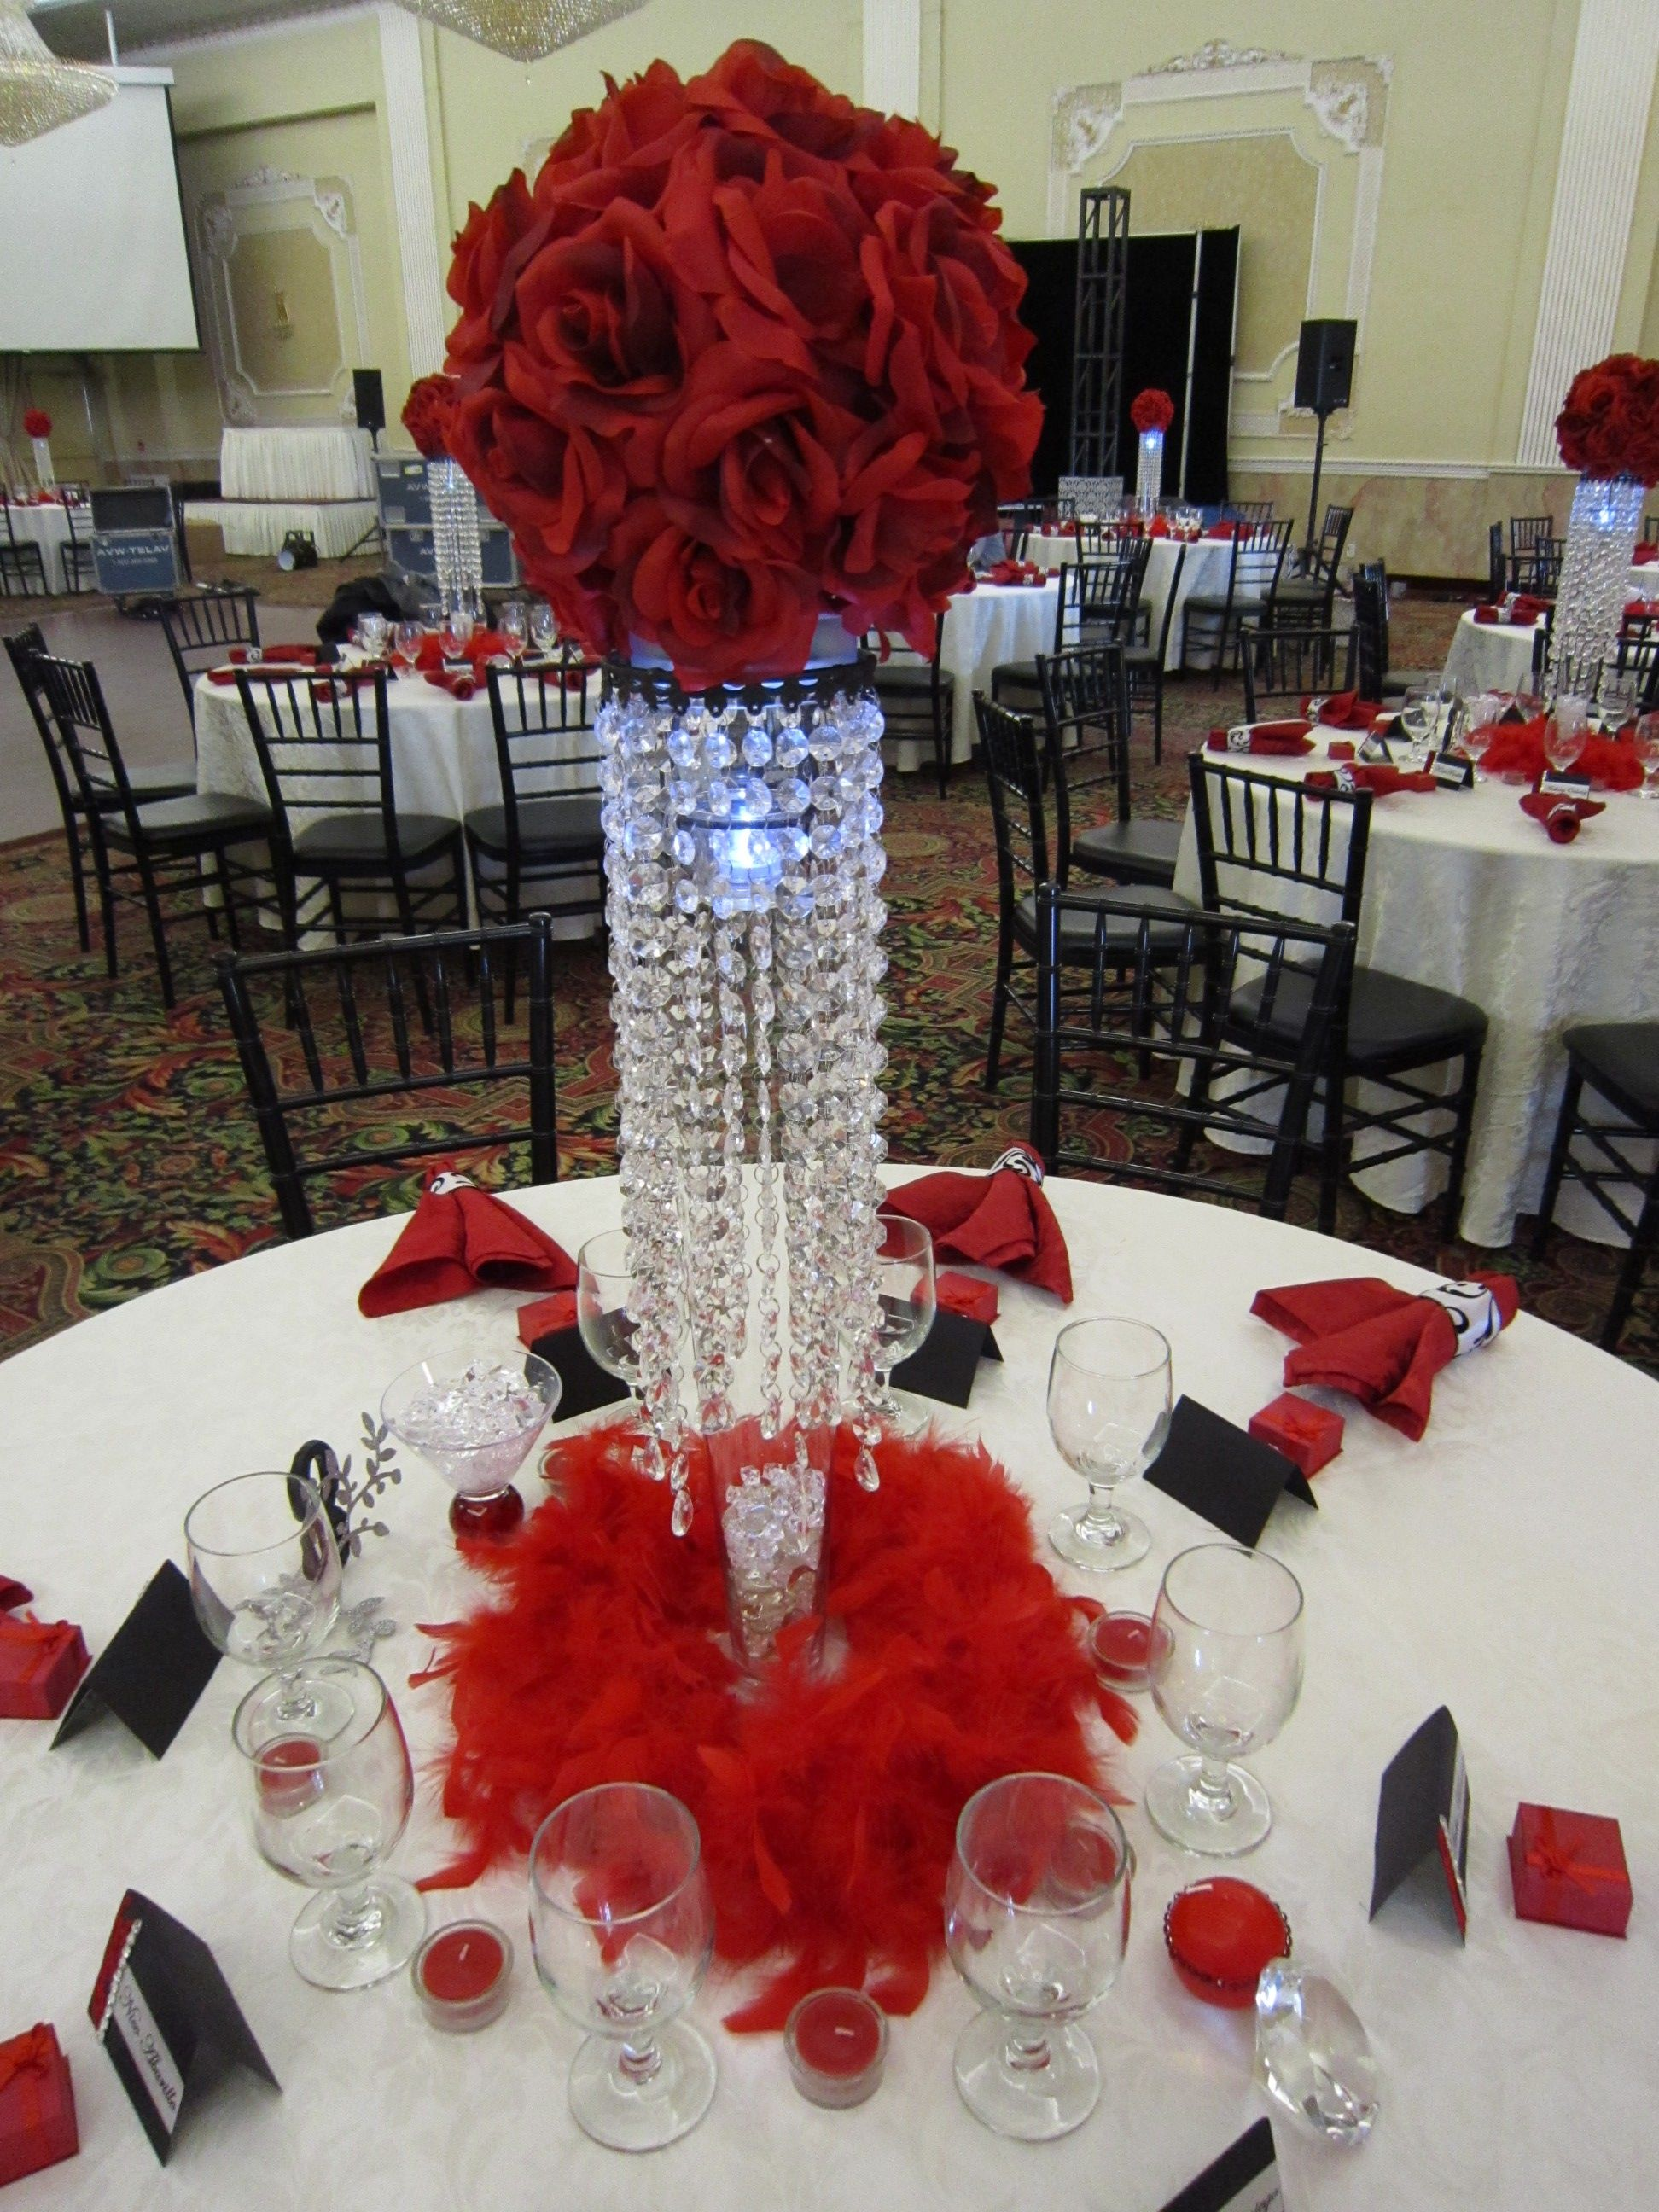 Wedding Centerpiece Ideas Party With Red Rose Ball Crystal - Table decoration ideas for 18th birthday